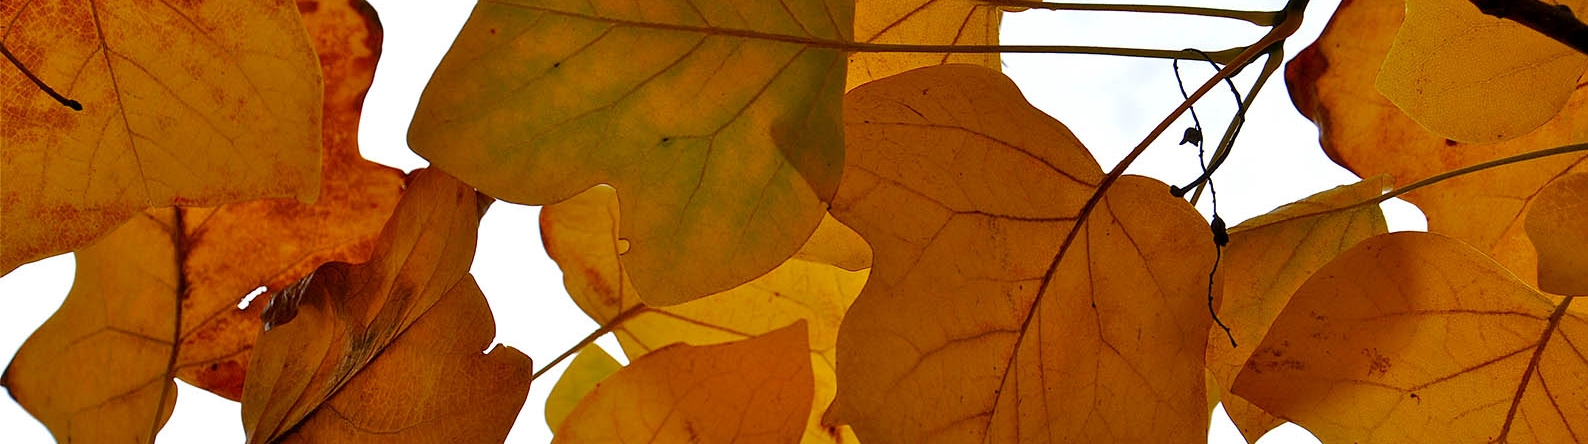 Looking through the orange autumn leaves of a Tulip tree